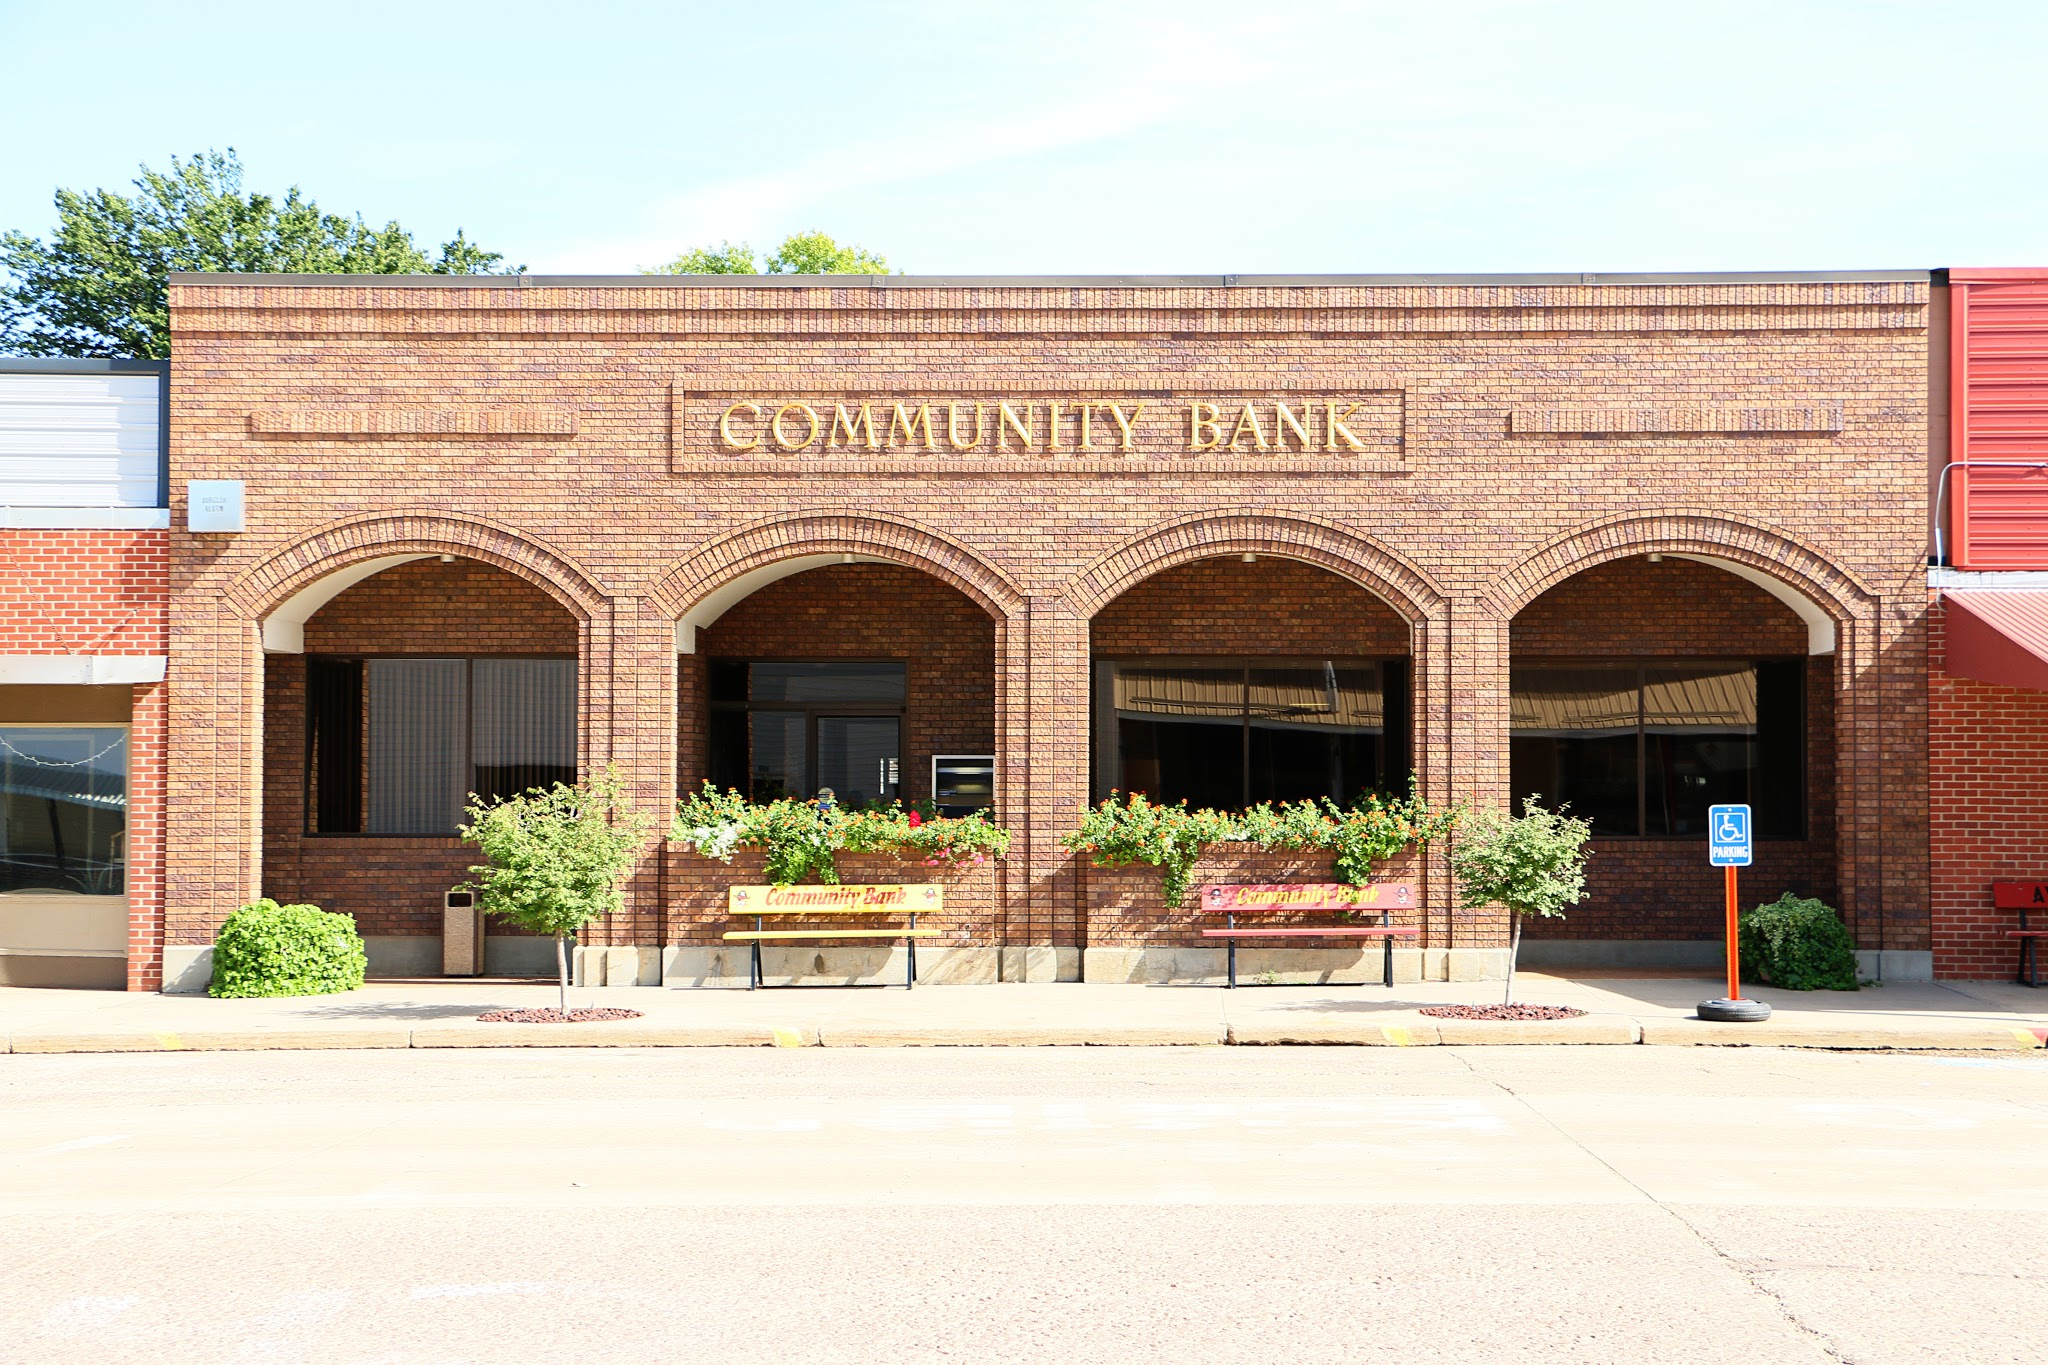 Community Bank Member F.D.I.C.  118 N Main St  Avon, SD 57315  (605) 286-3213  www.communitybankavon.com/  Rick Pier, President  Hours: Monday, Tuesday, Wednesday, Friday – 8:30 AM – 3:30 PM Thursday – 8:30 AM – 5:00 PM